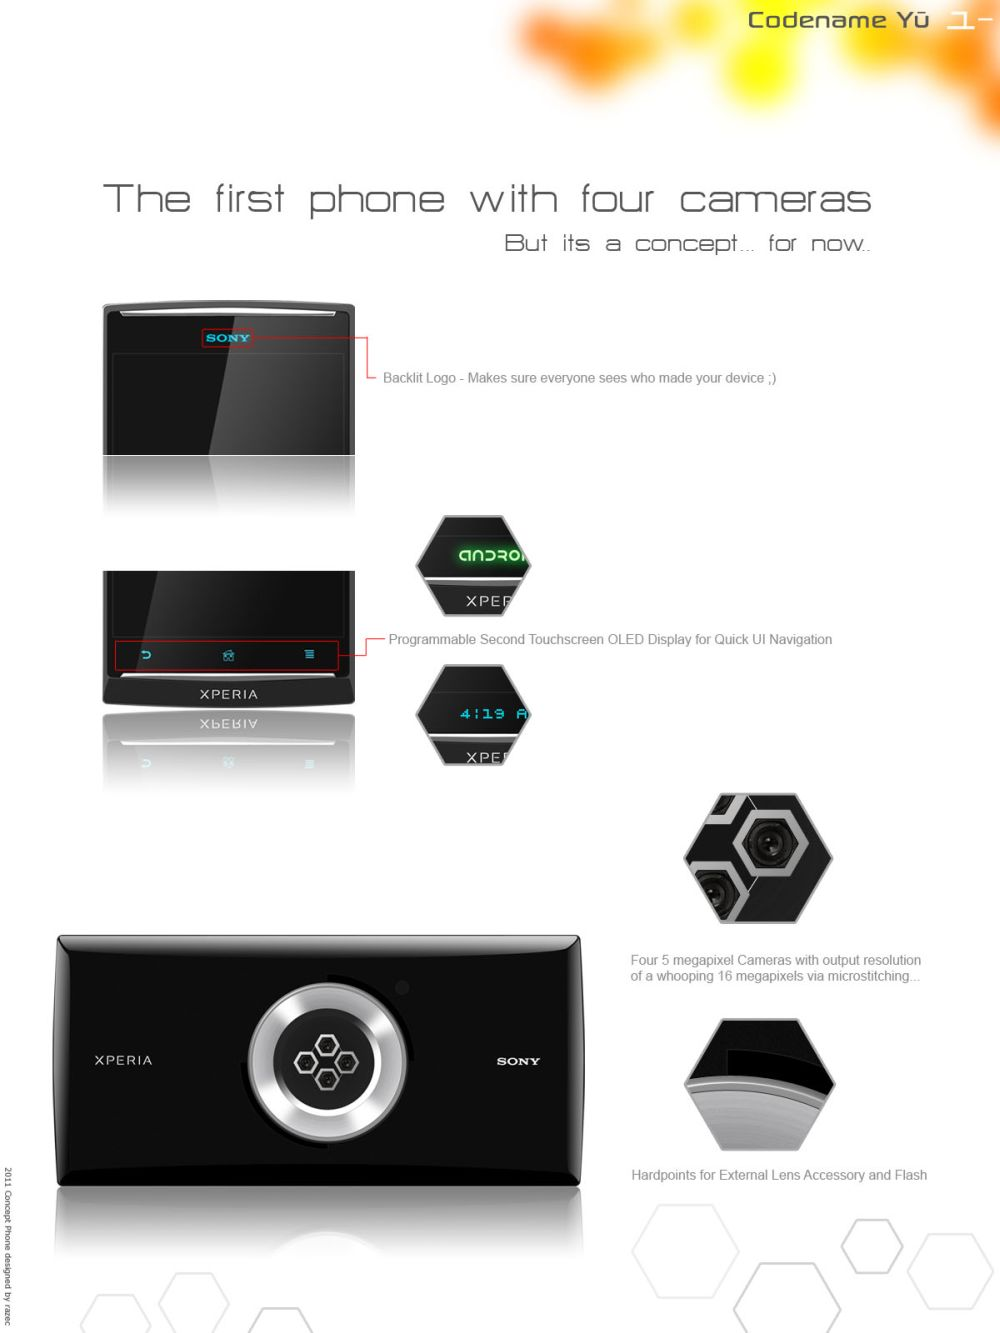 Sony Xperia Yu Features 4 Cameras With 5MP resolution